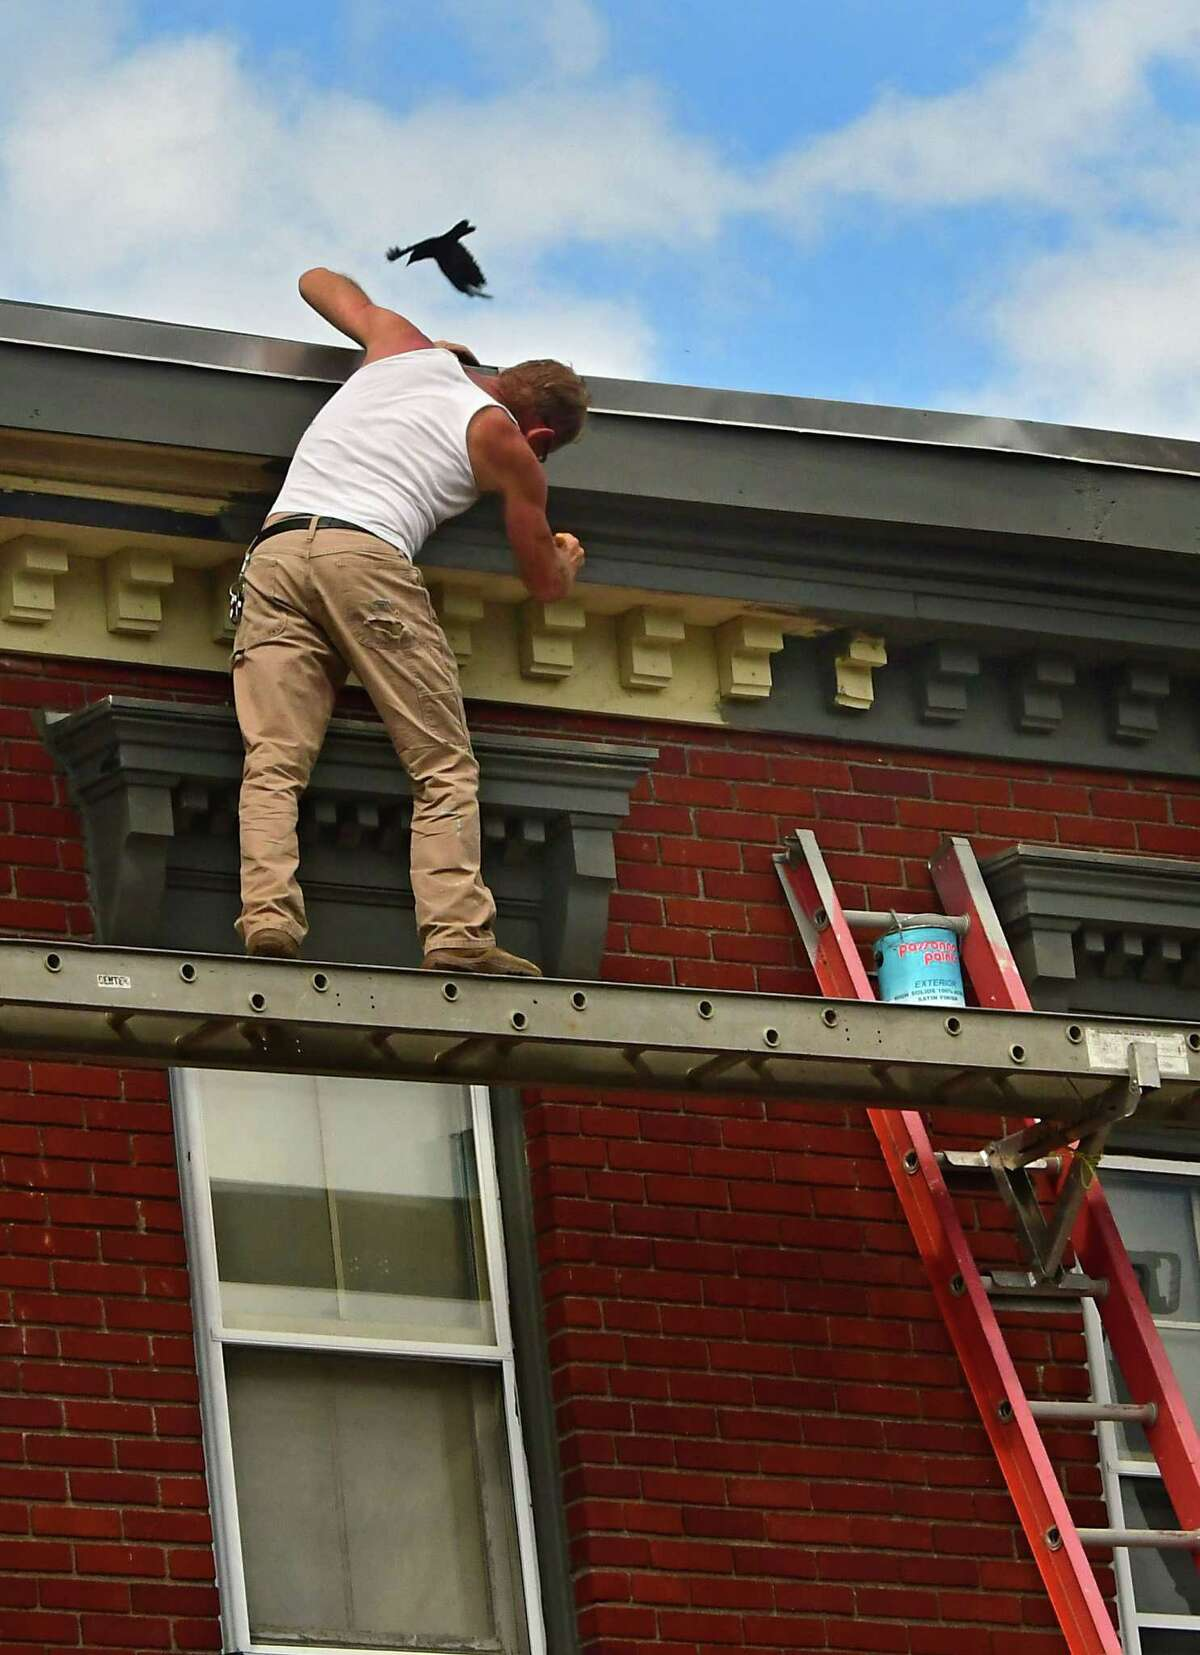 A man paints decorative molding on a building along Union Street on Wednesday, Aug. 5, 2020 in Schenectady, N.Y. (Lori Van Buren/Times Union)